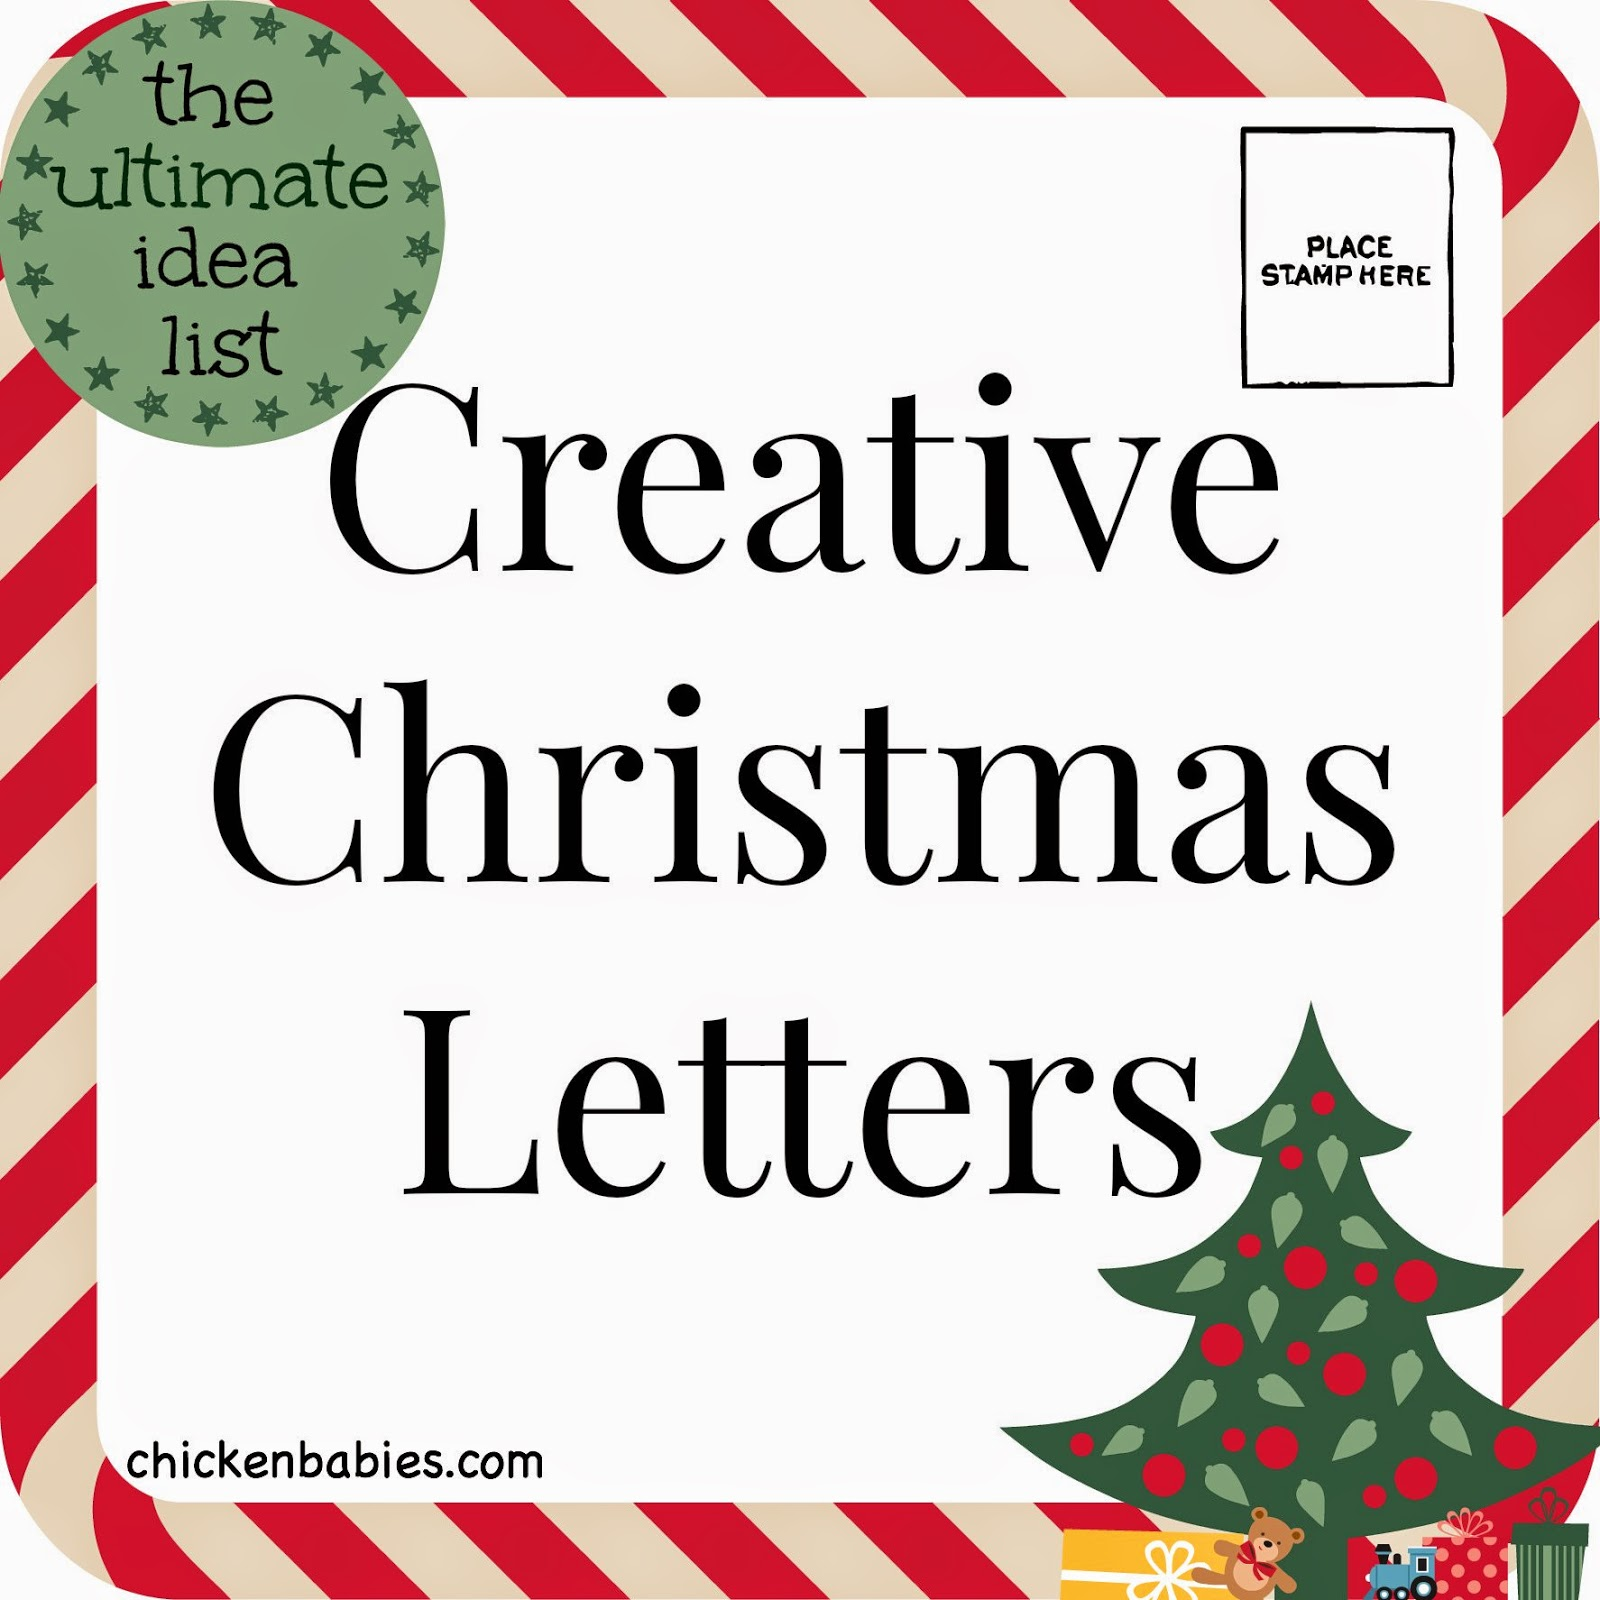 Seven Tips for Sparkling Christmas Letters